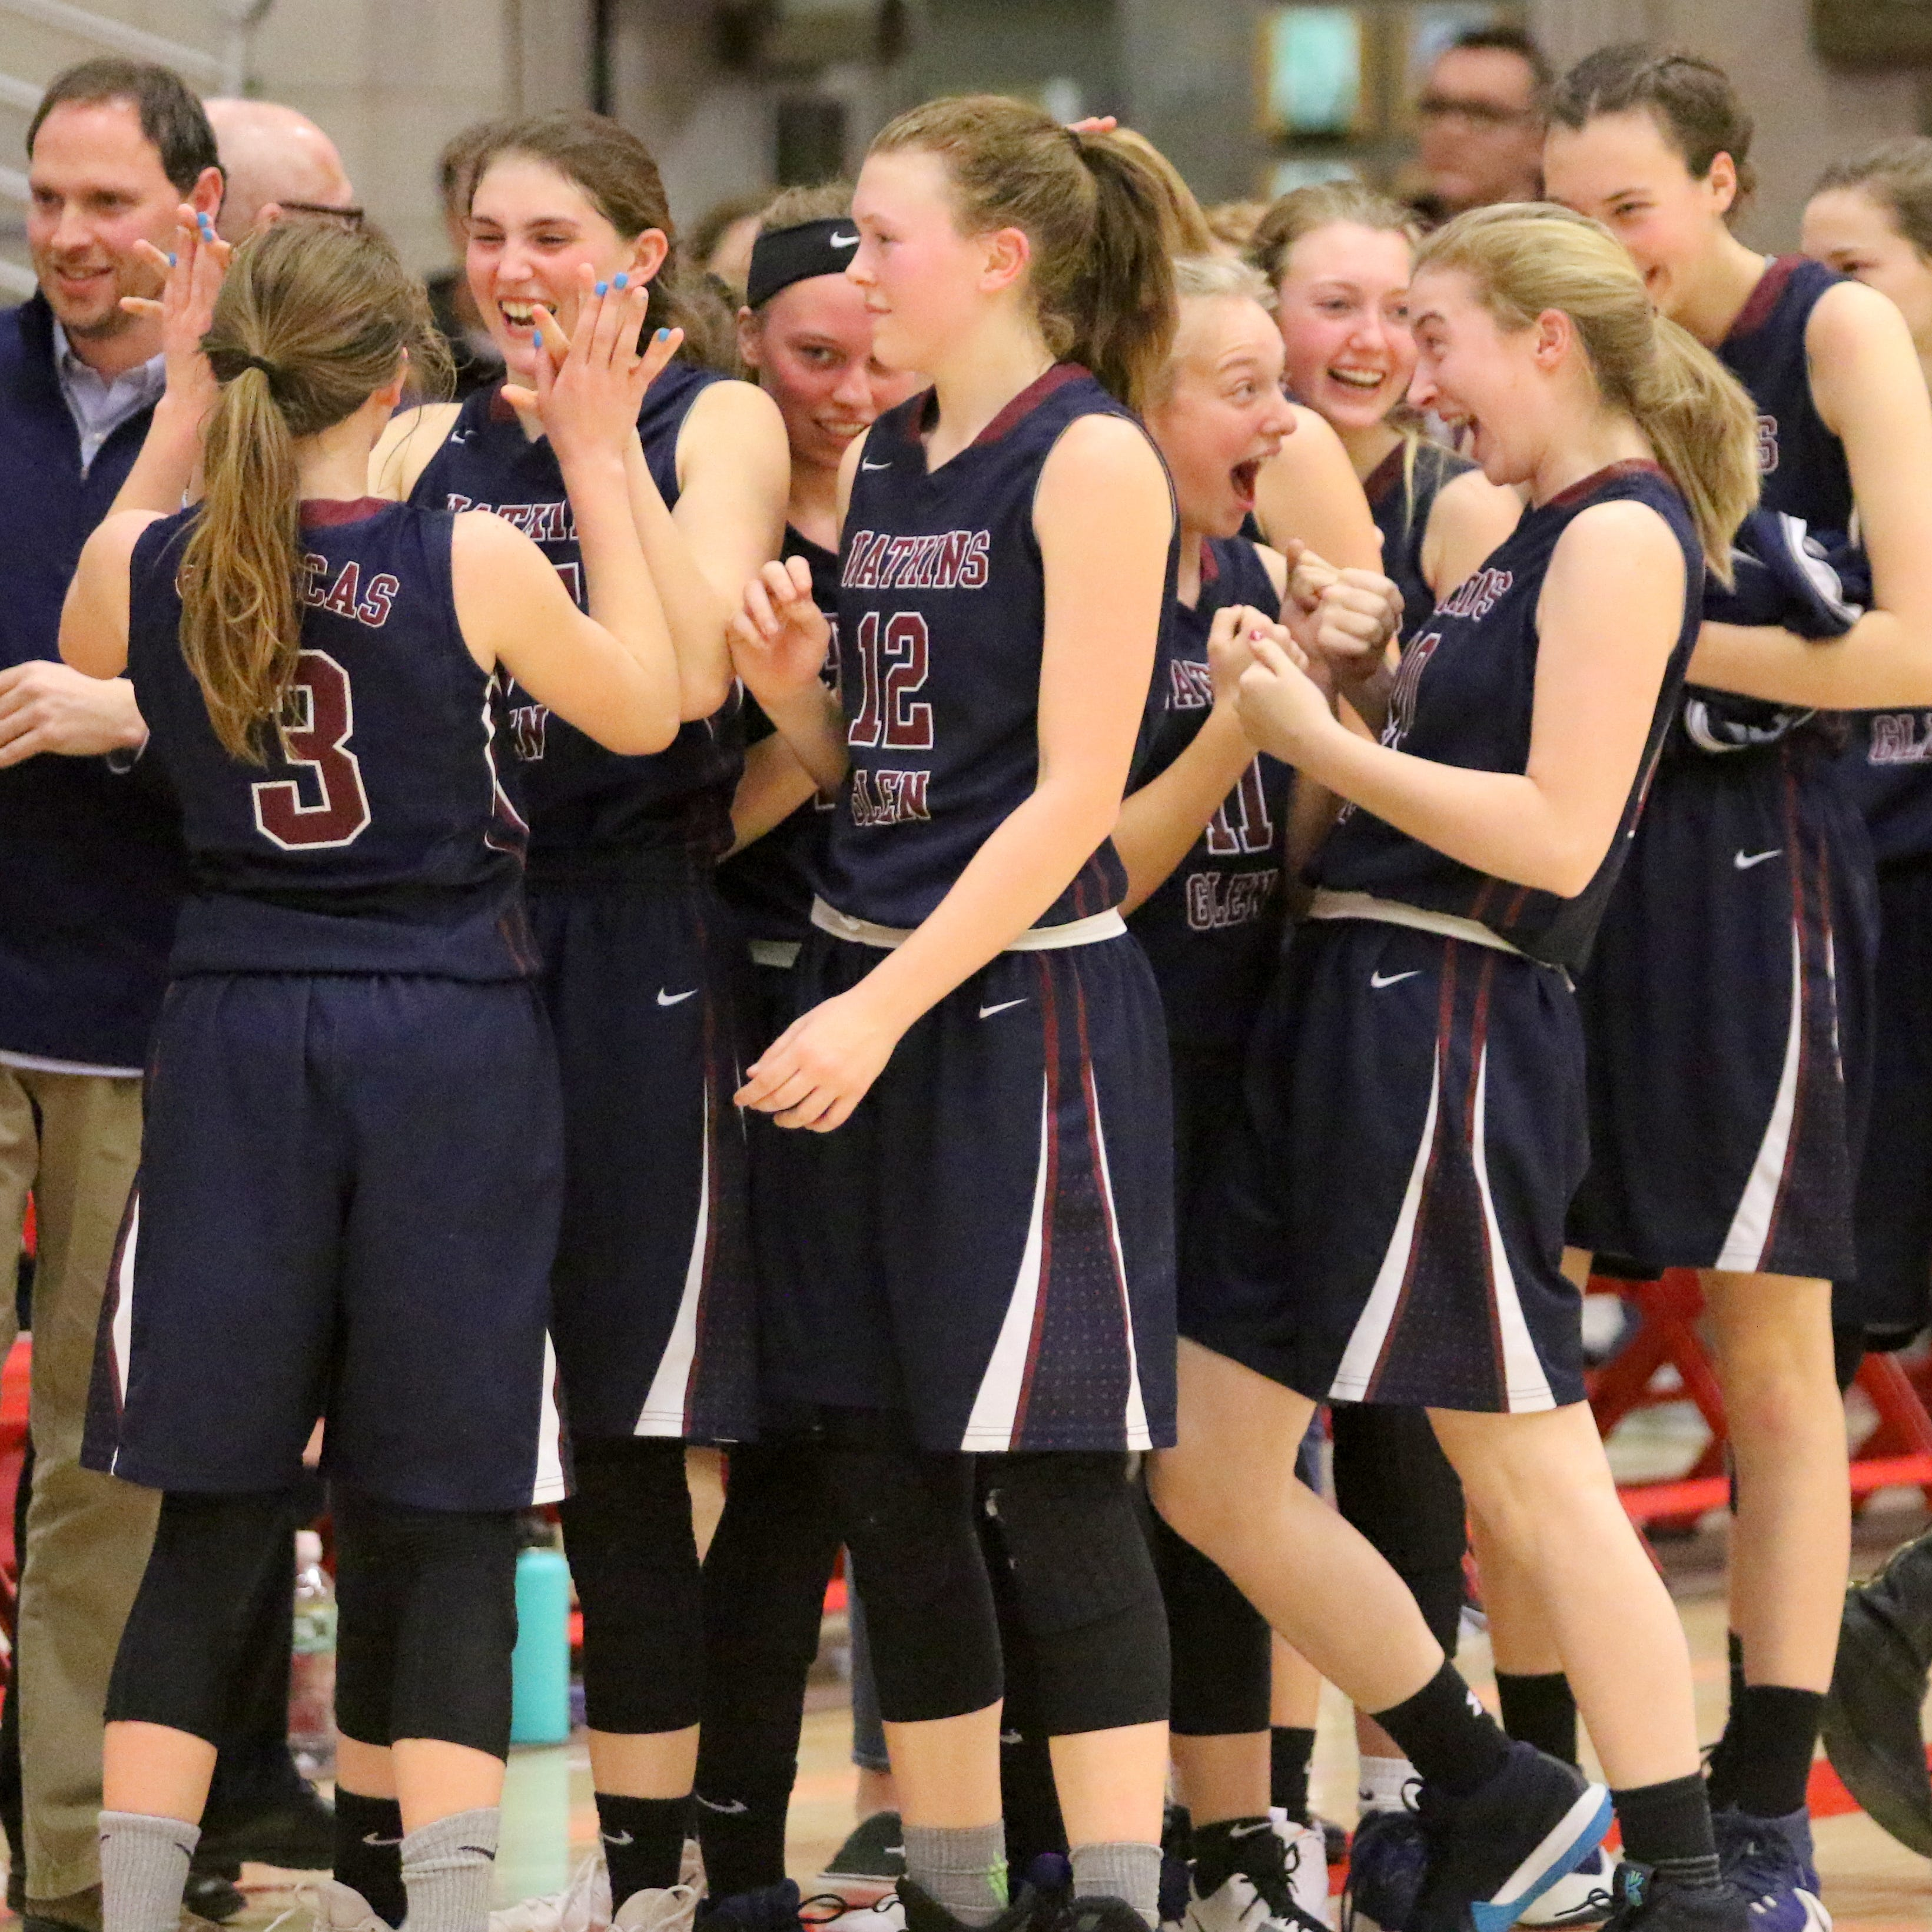 Watkins Glen girls basketball team's success built on hard work, trust